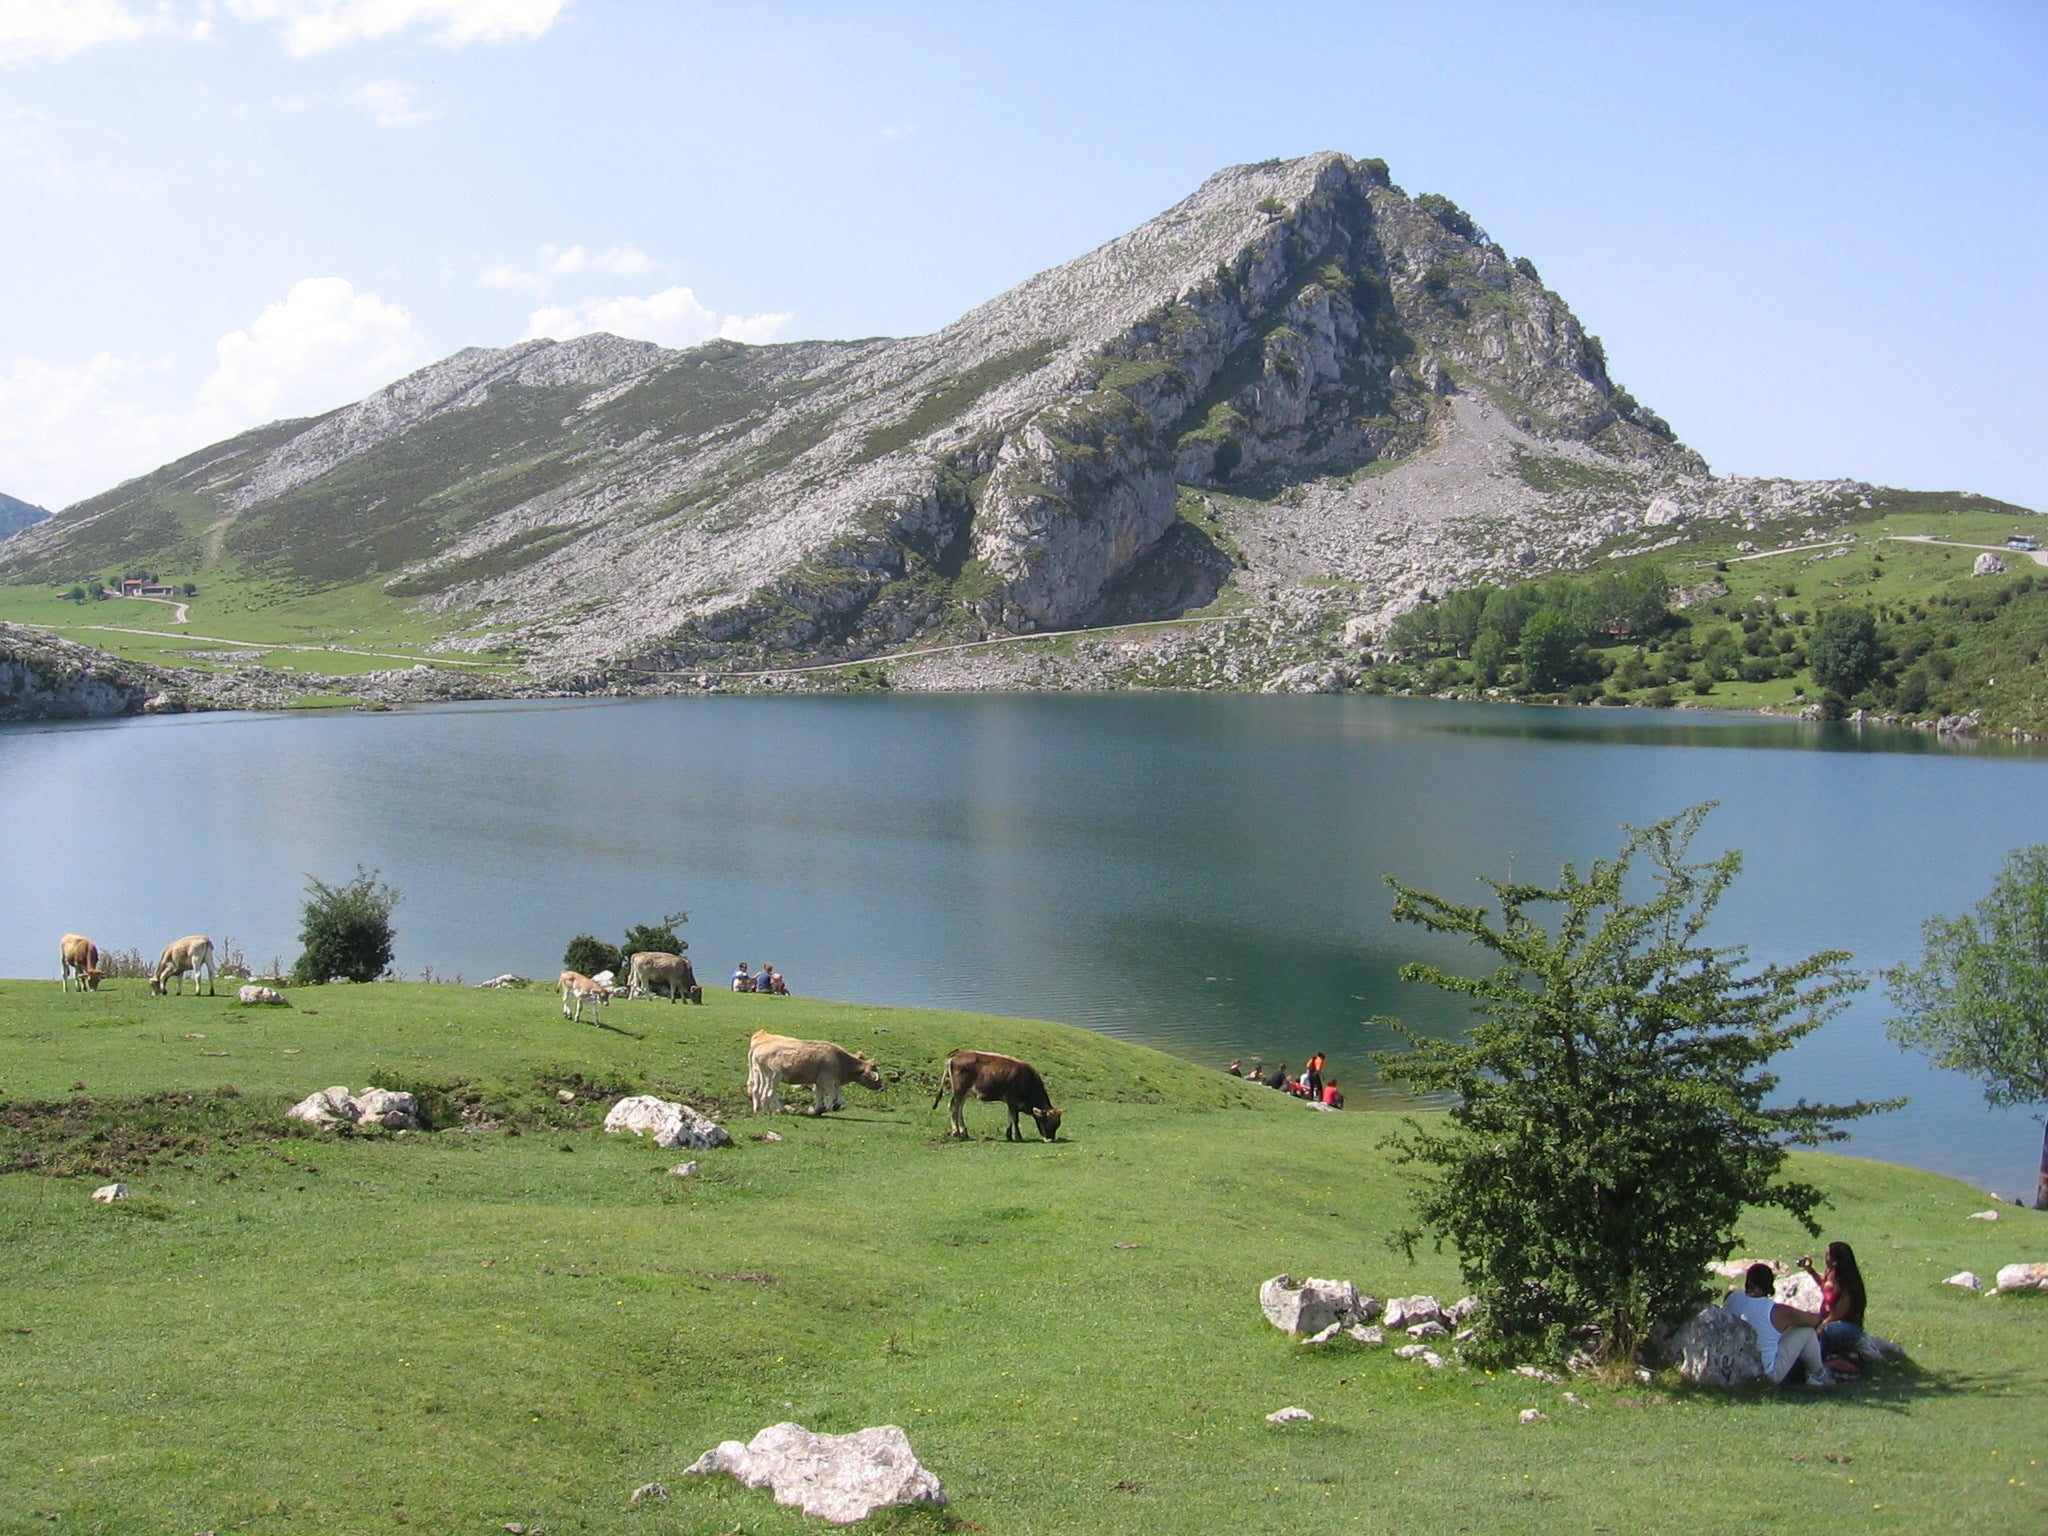 Bay in The Lakes of Covadonga - Enol and Ercina lakes